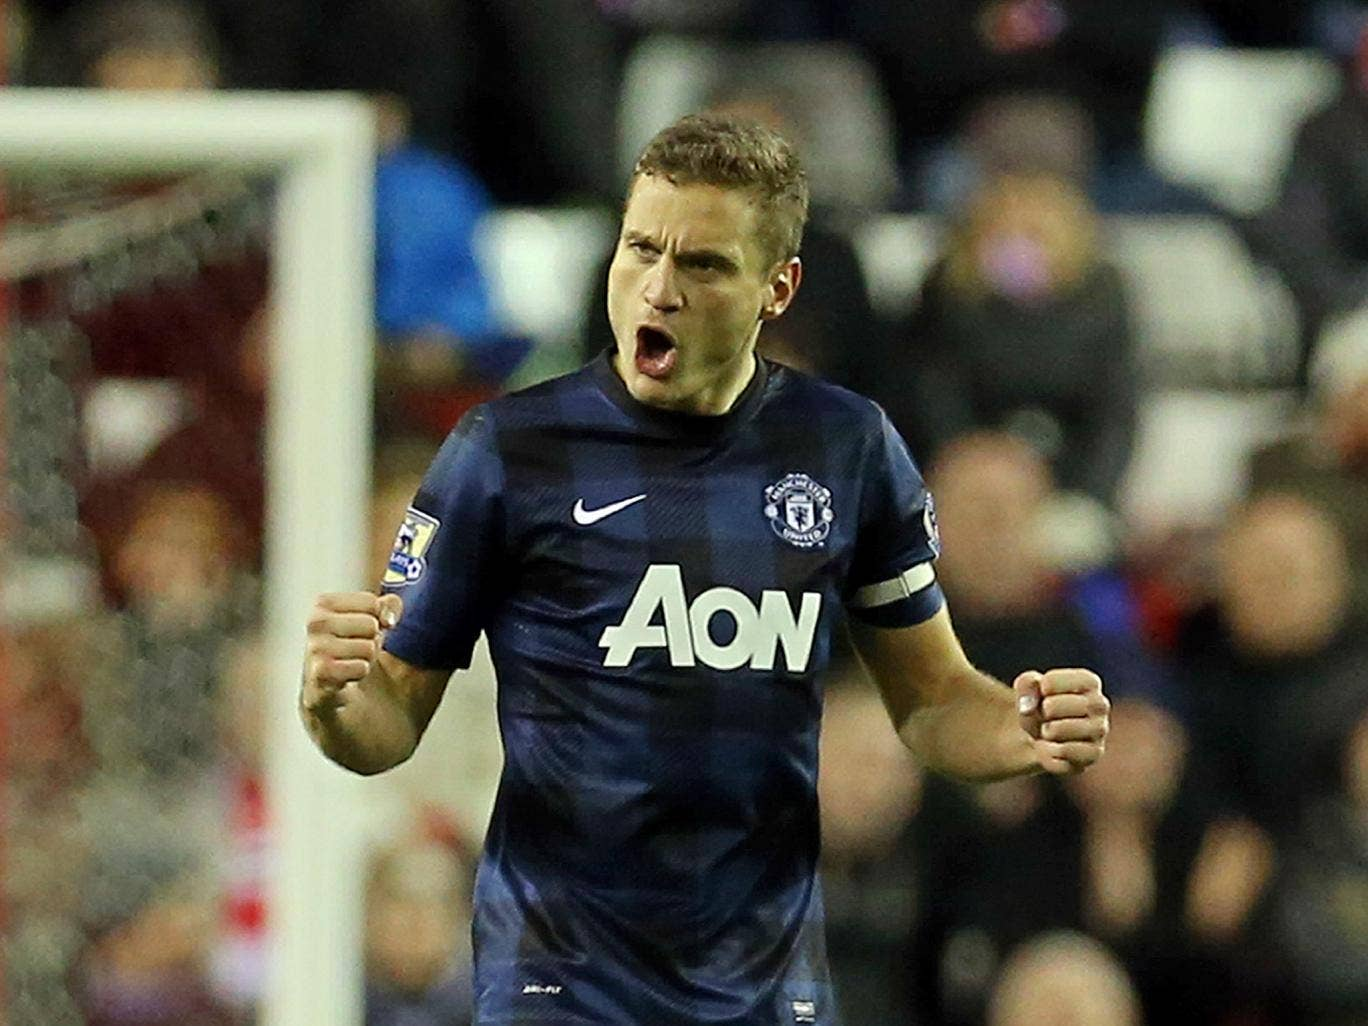 Nemanja Vidic has claimed he will not give up on Manchester United's title chances